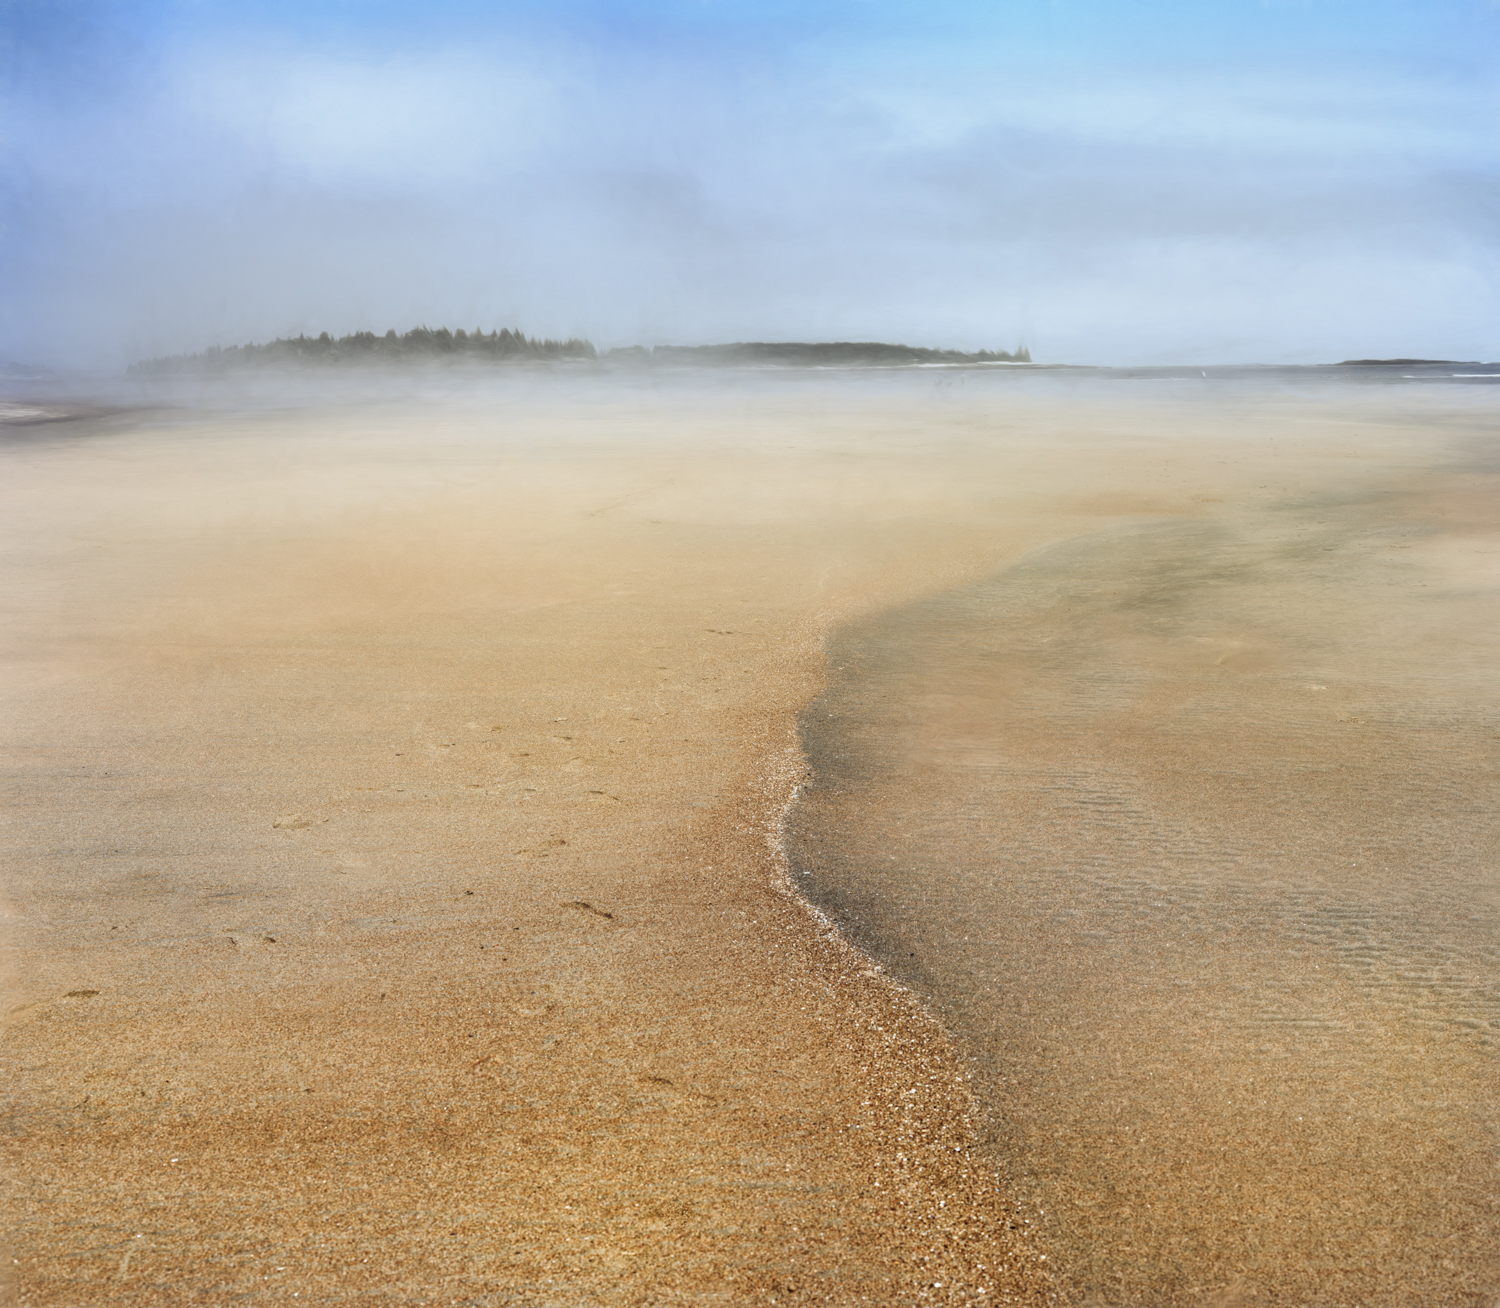 Popham_Beach_Final_edit_edit-